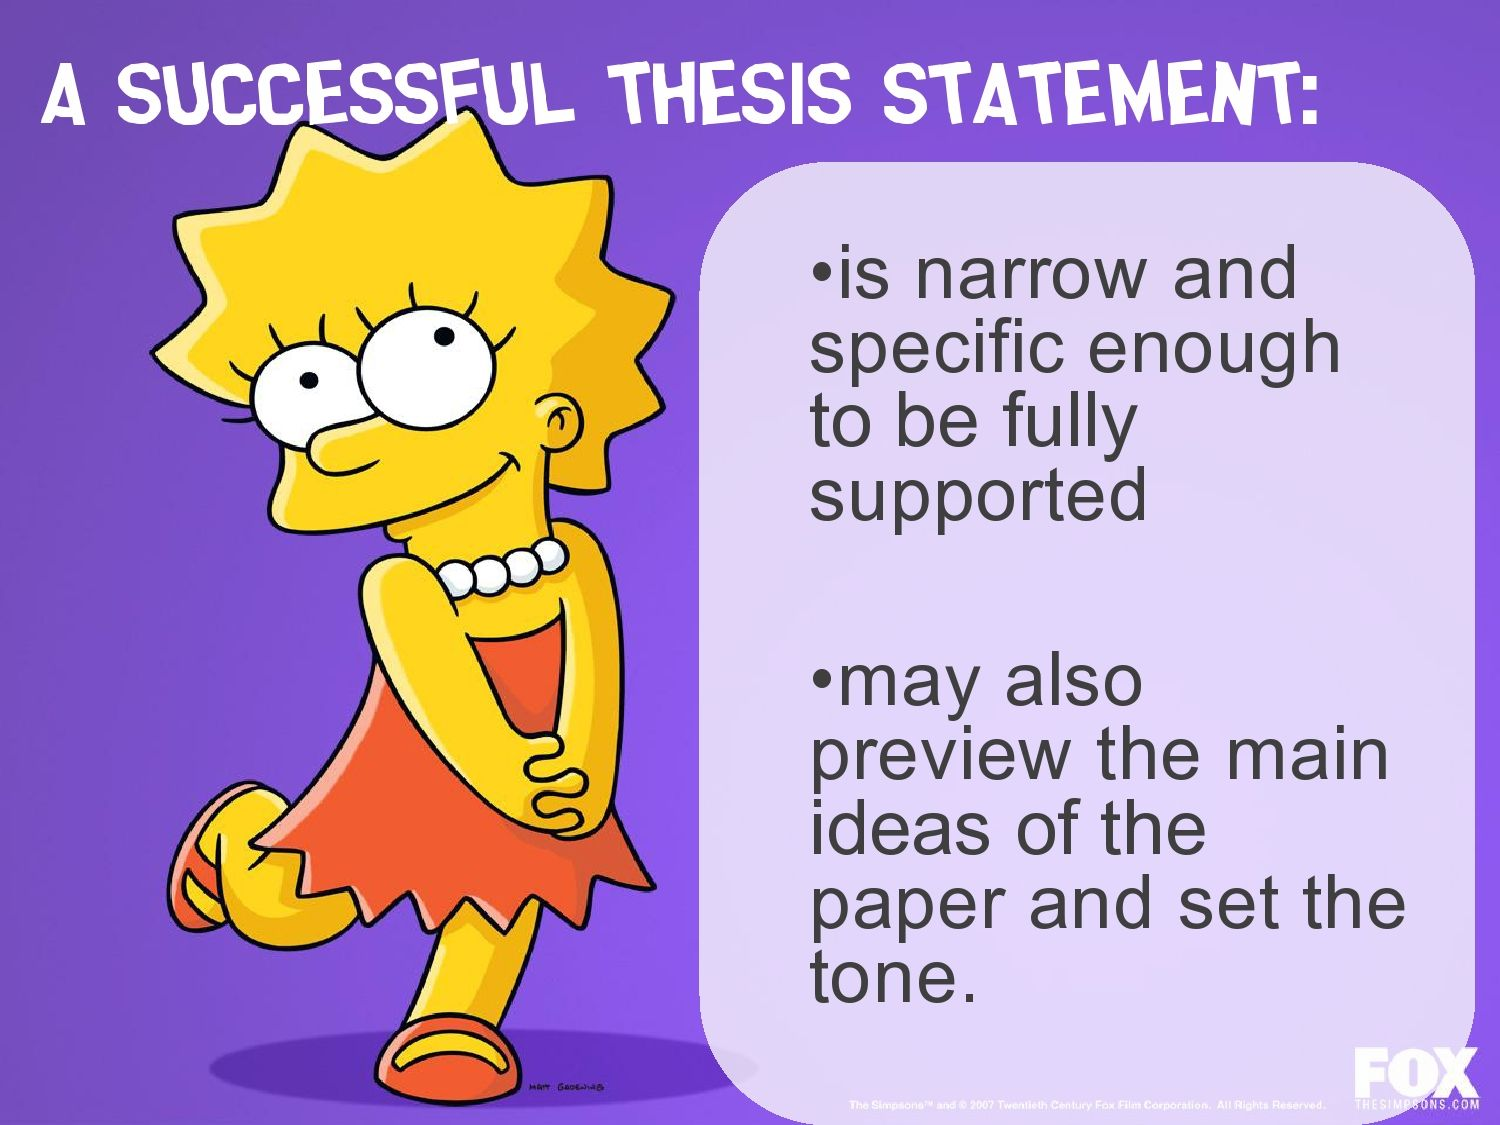 Making a thesis statement for an essay